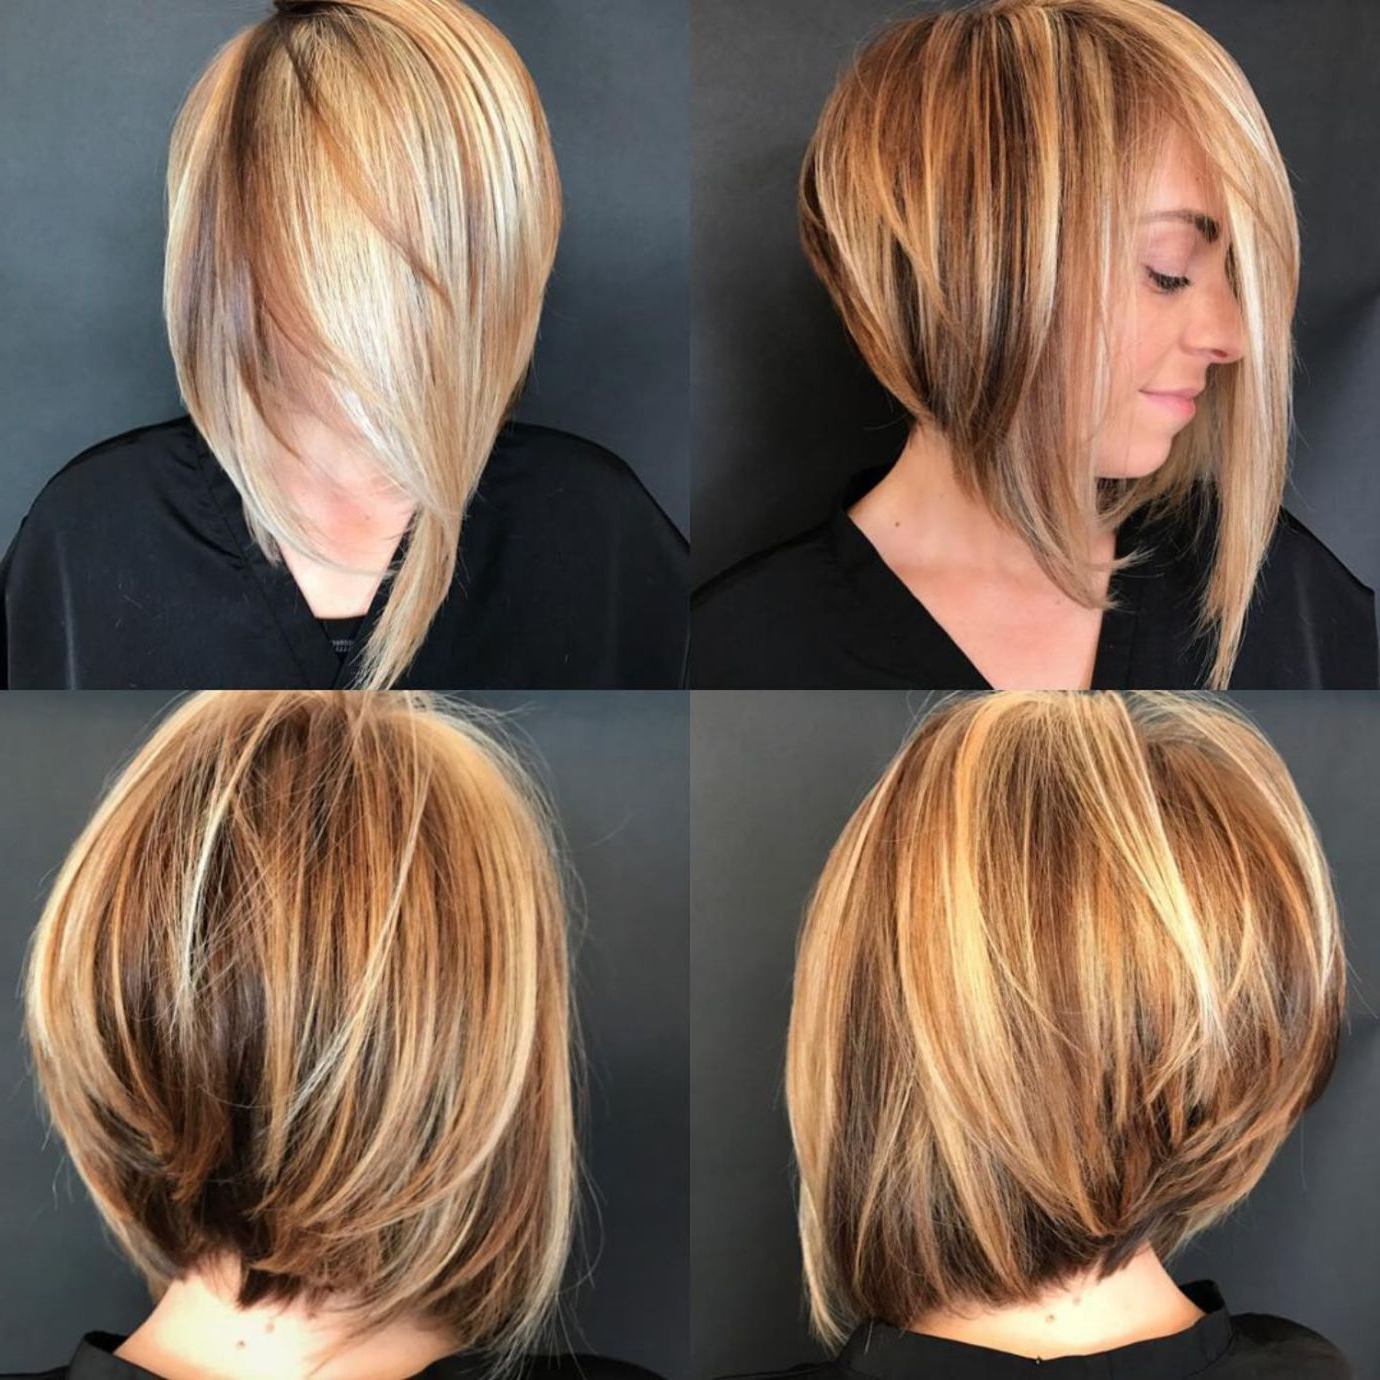 30 Beautiful And Classy Graduated Bob Haircuts (Gallery 1 of 20)